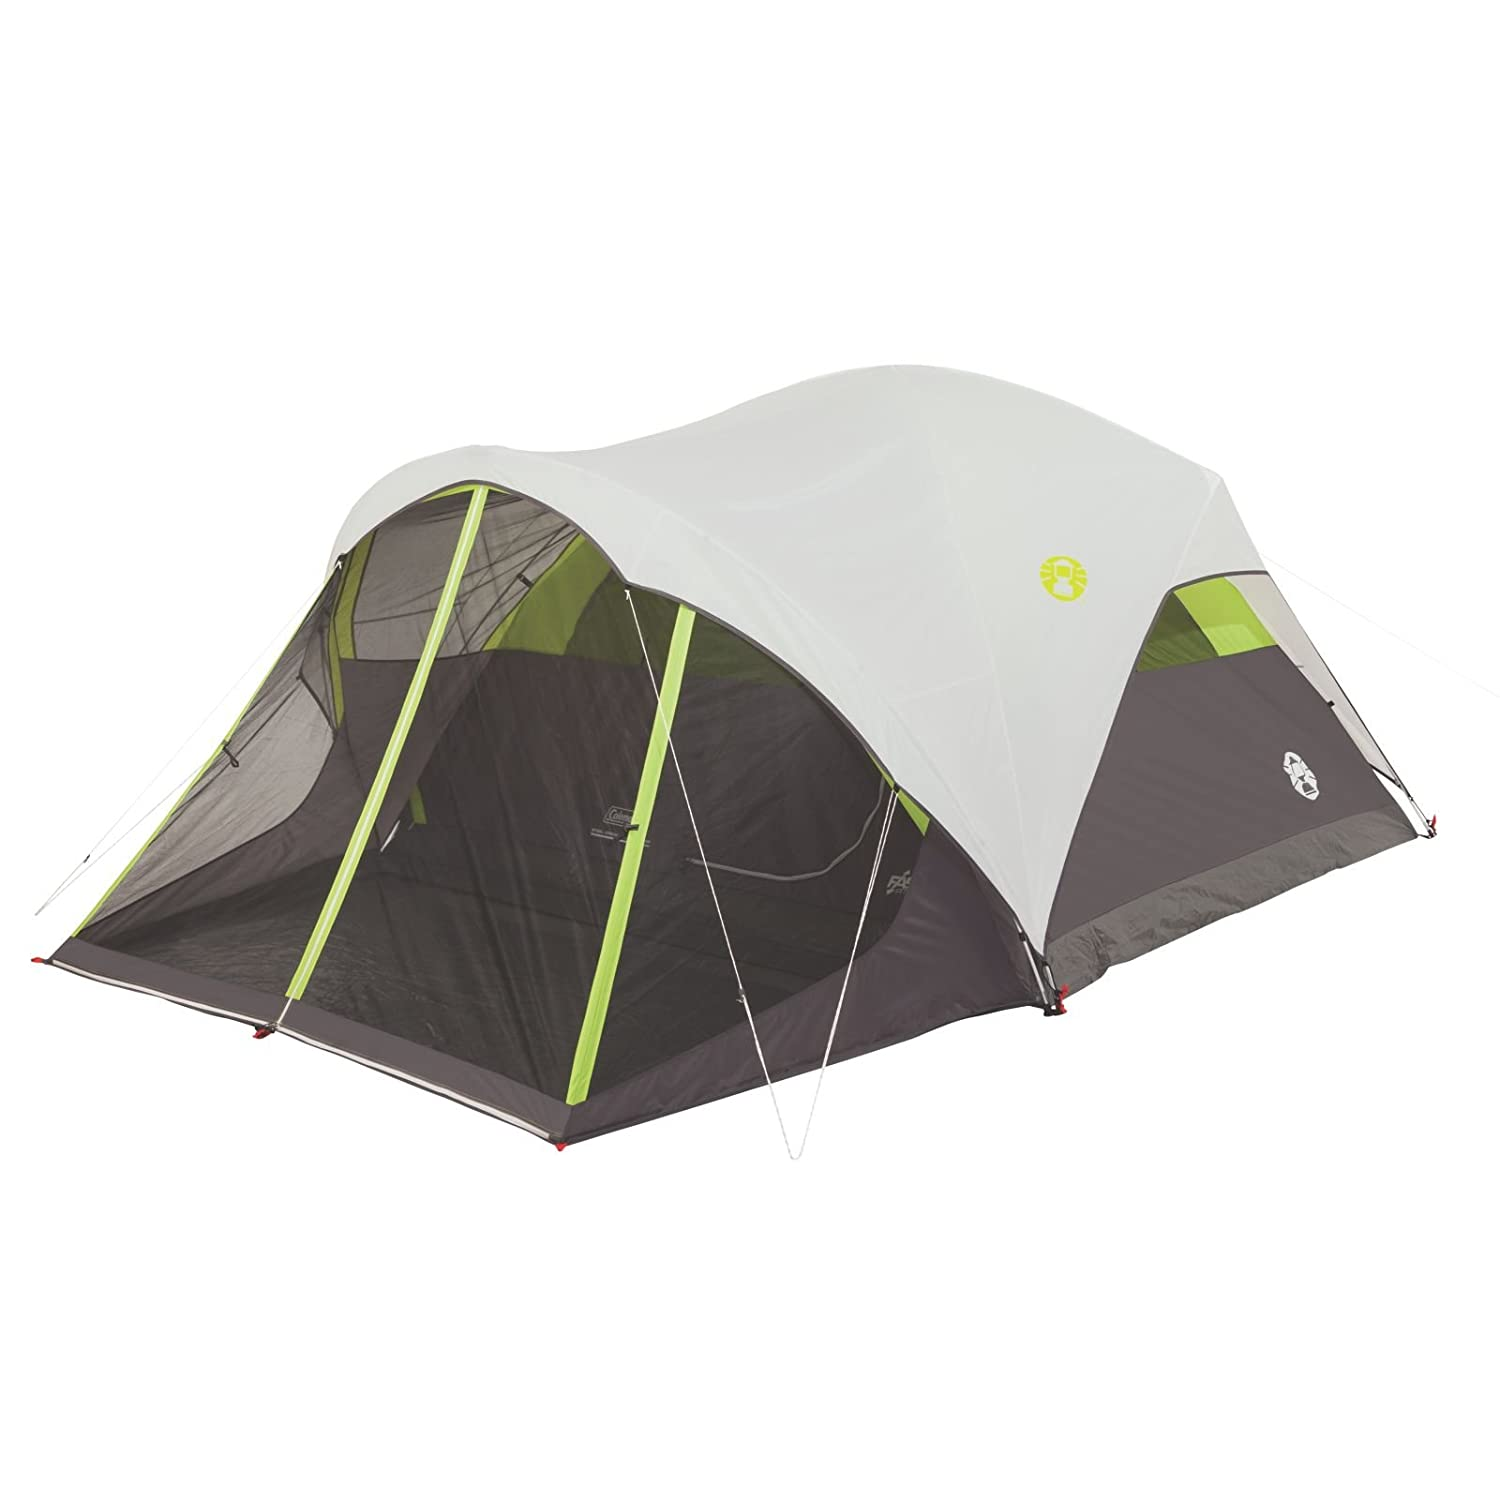 STEEL CREEK FAST PITCH 6-PERSON DOME TENT WITH SCREEN ROOM  sc 1 st  Amazon.com & Family Camping Tents | Amazon.com